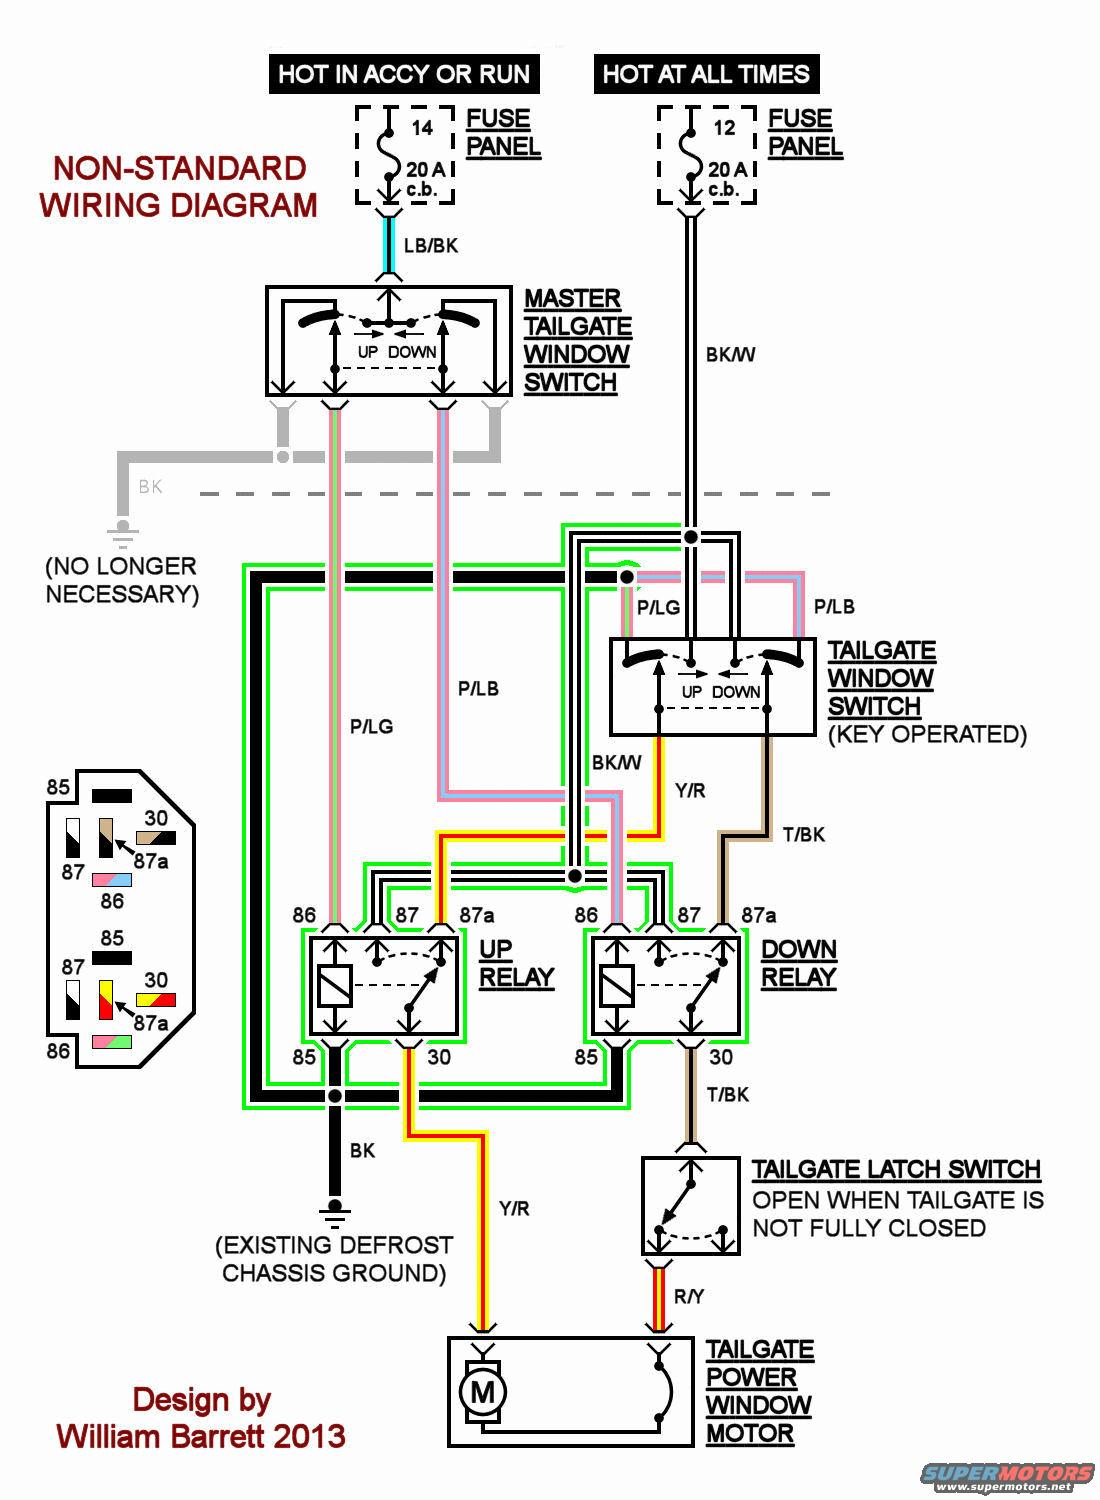 wrg 7963] 1989 ford bronco fuse diagram  1989 ford bronco fuse diagram #11